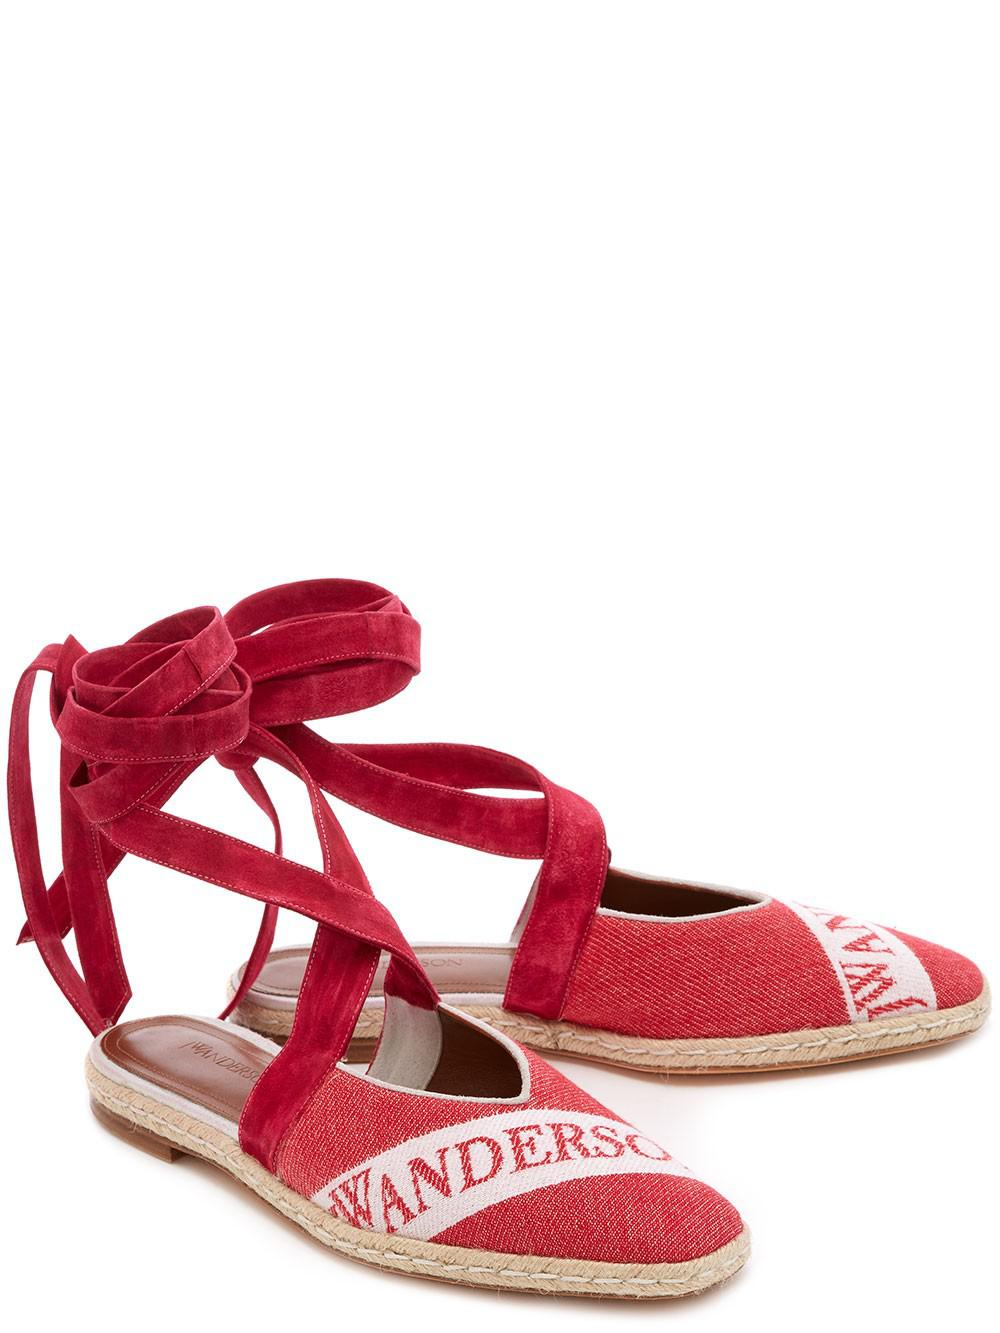 Ruby Red 25 Logo Ballerina Leather Espadrilles J.W.Anderson Vnh4LN